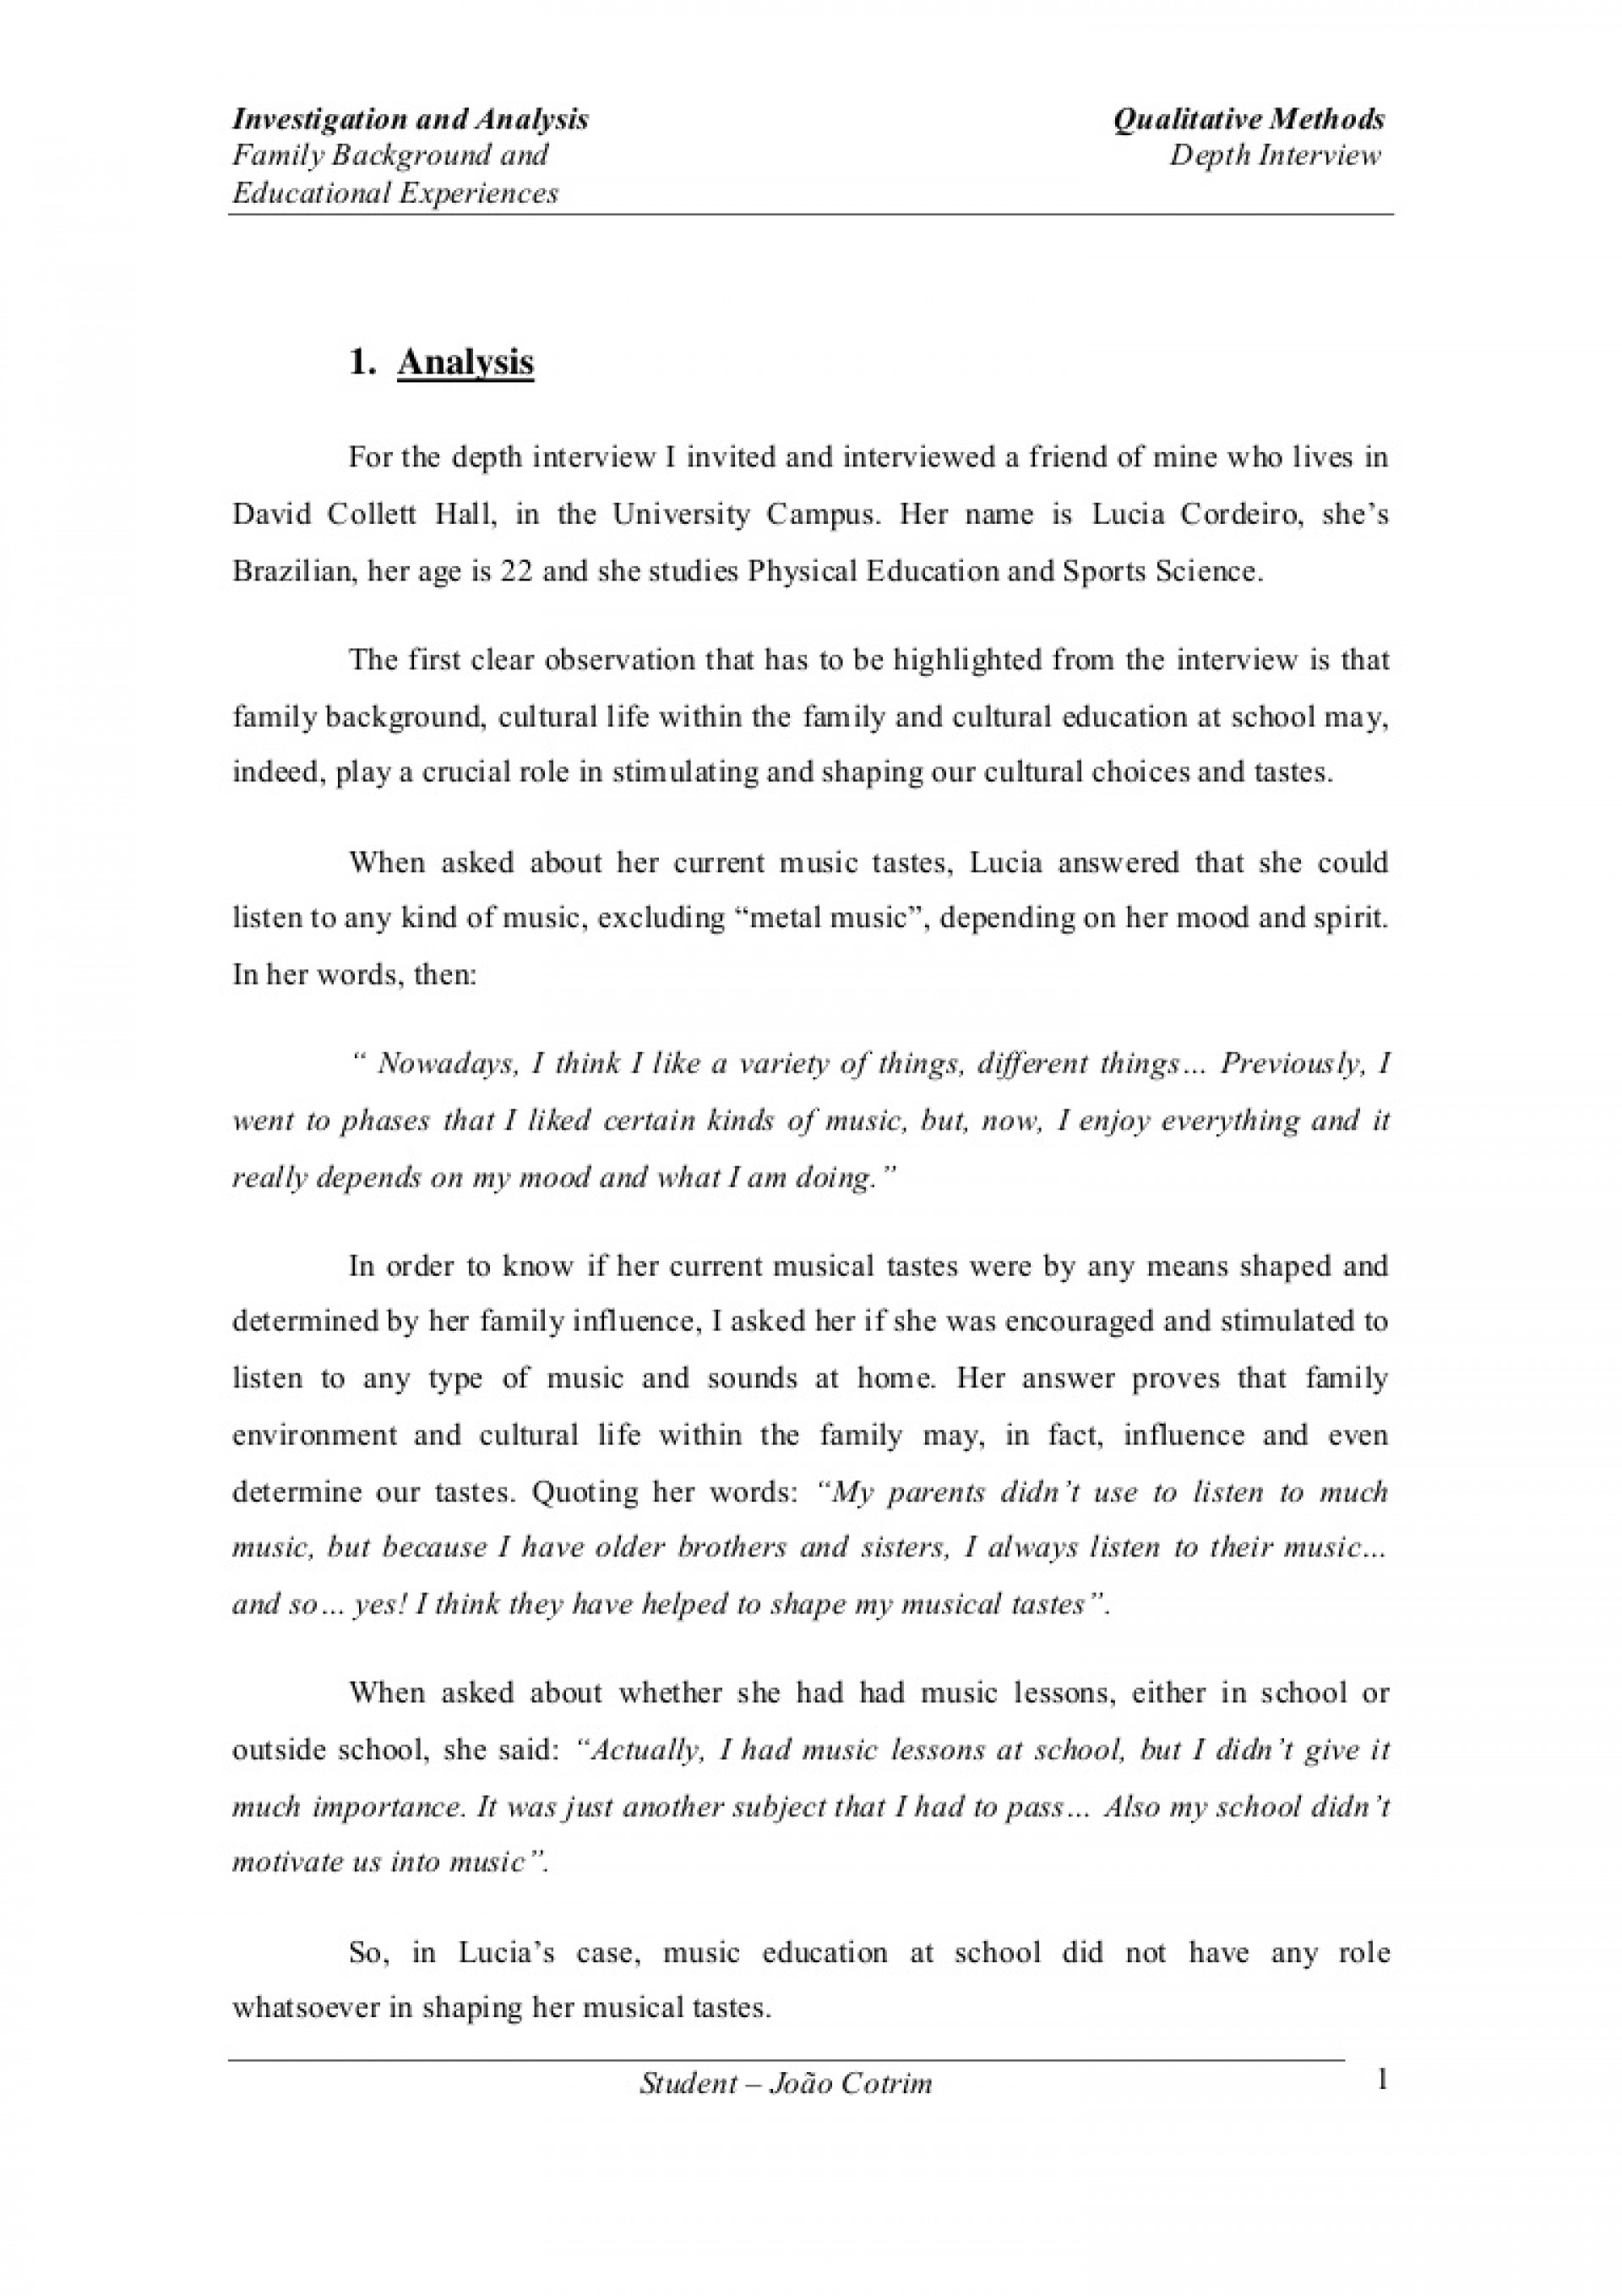 005 Essay Example Depthinterview Phpapp01 Thumbnail How To Write Fantastic A Profile On Someone Else An Event 1920